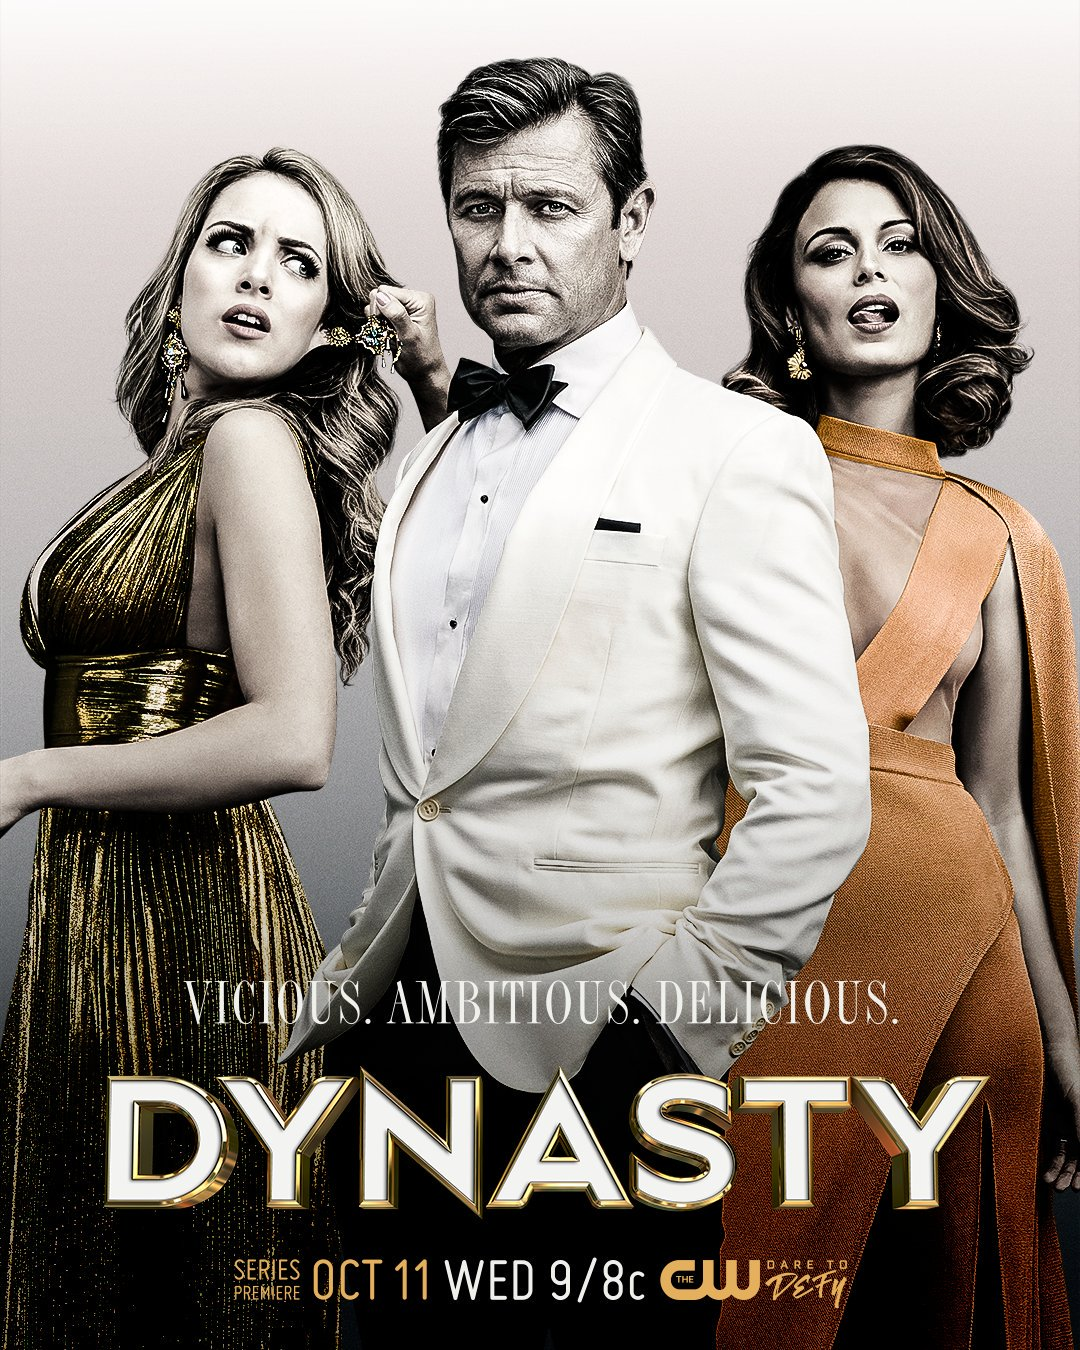 Dynasty Poster - The CW.jpg